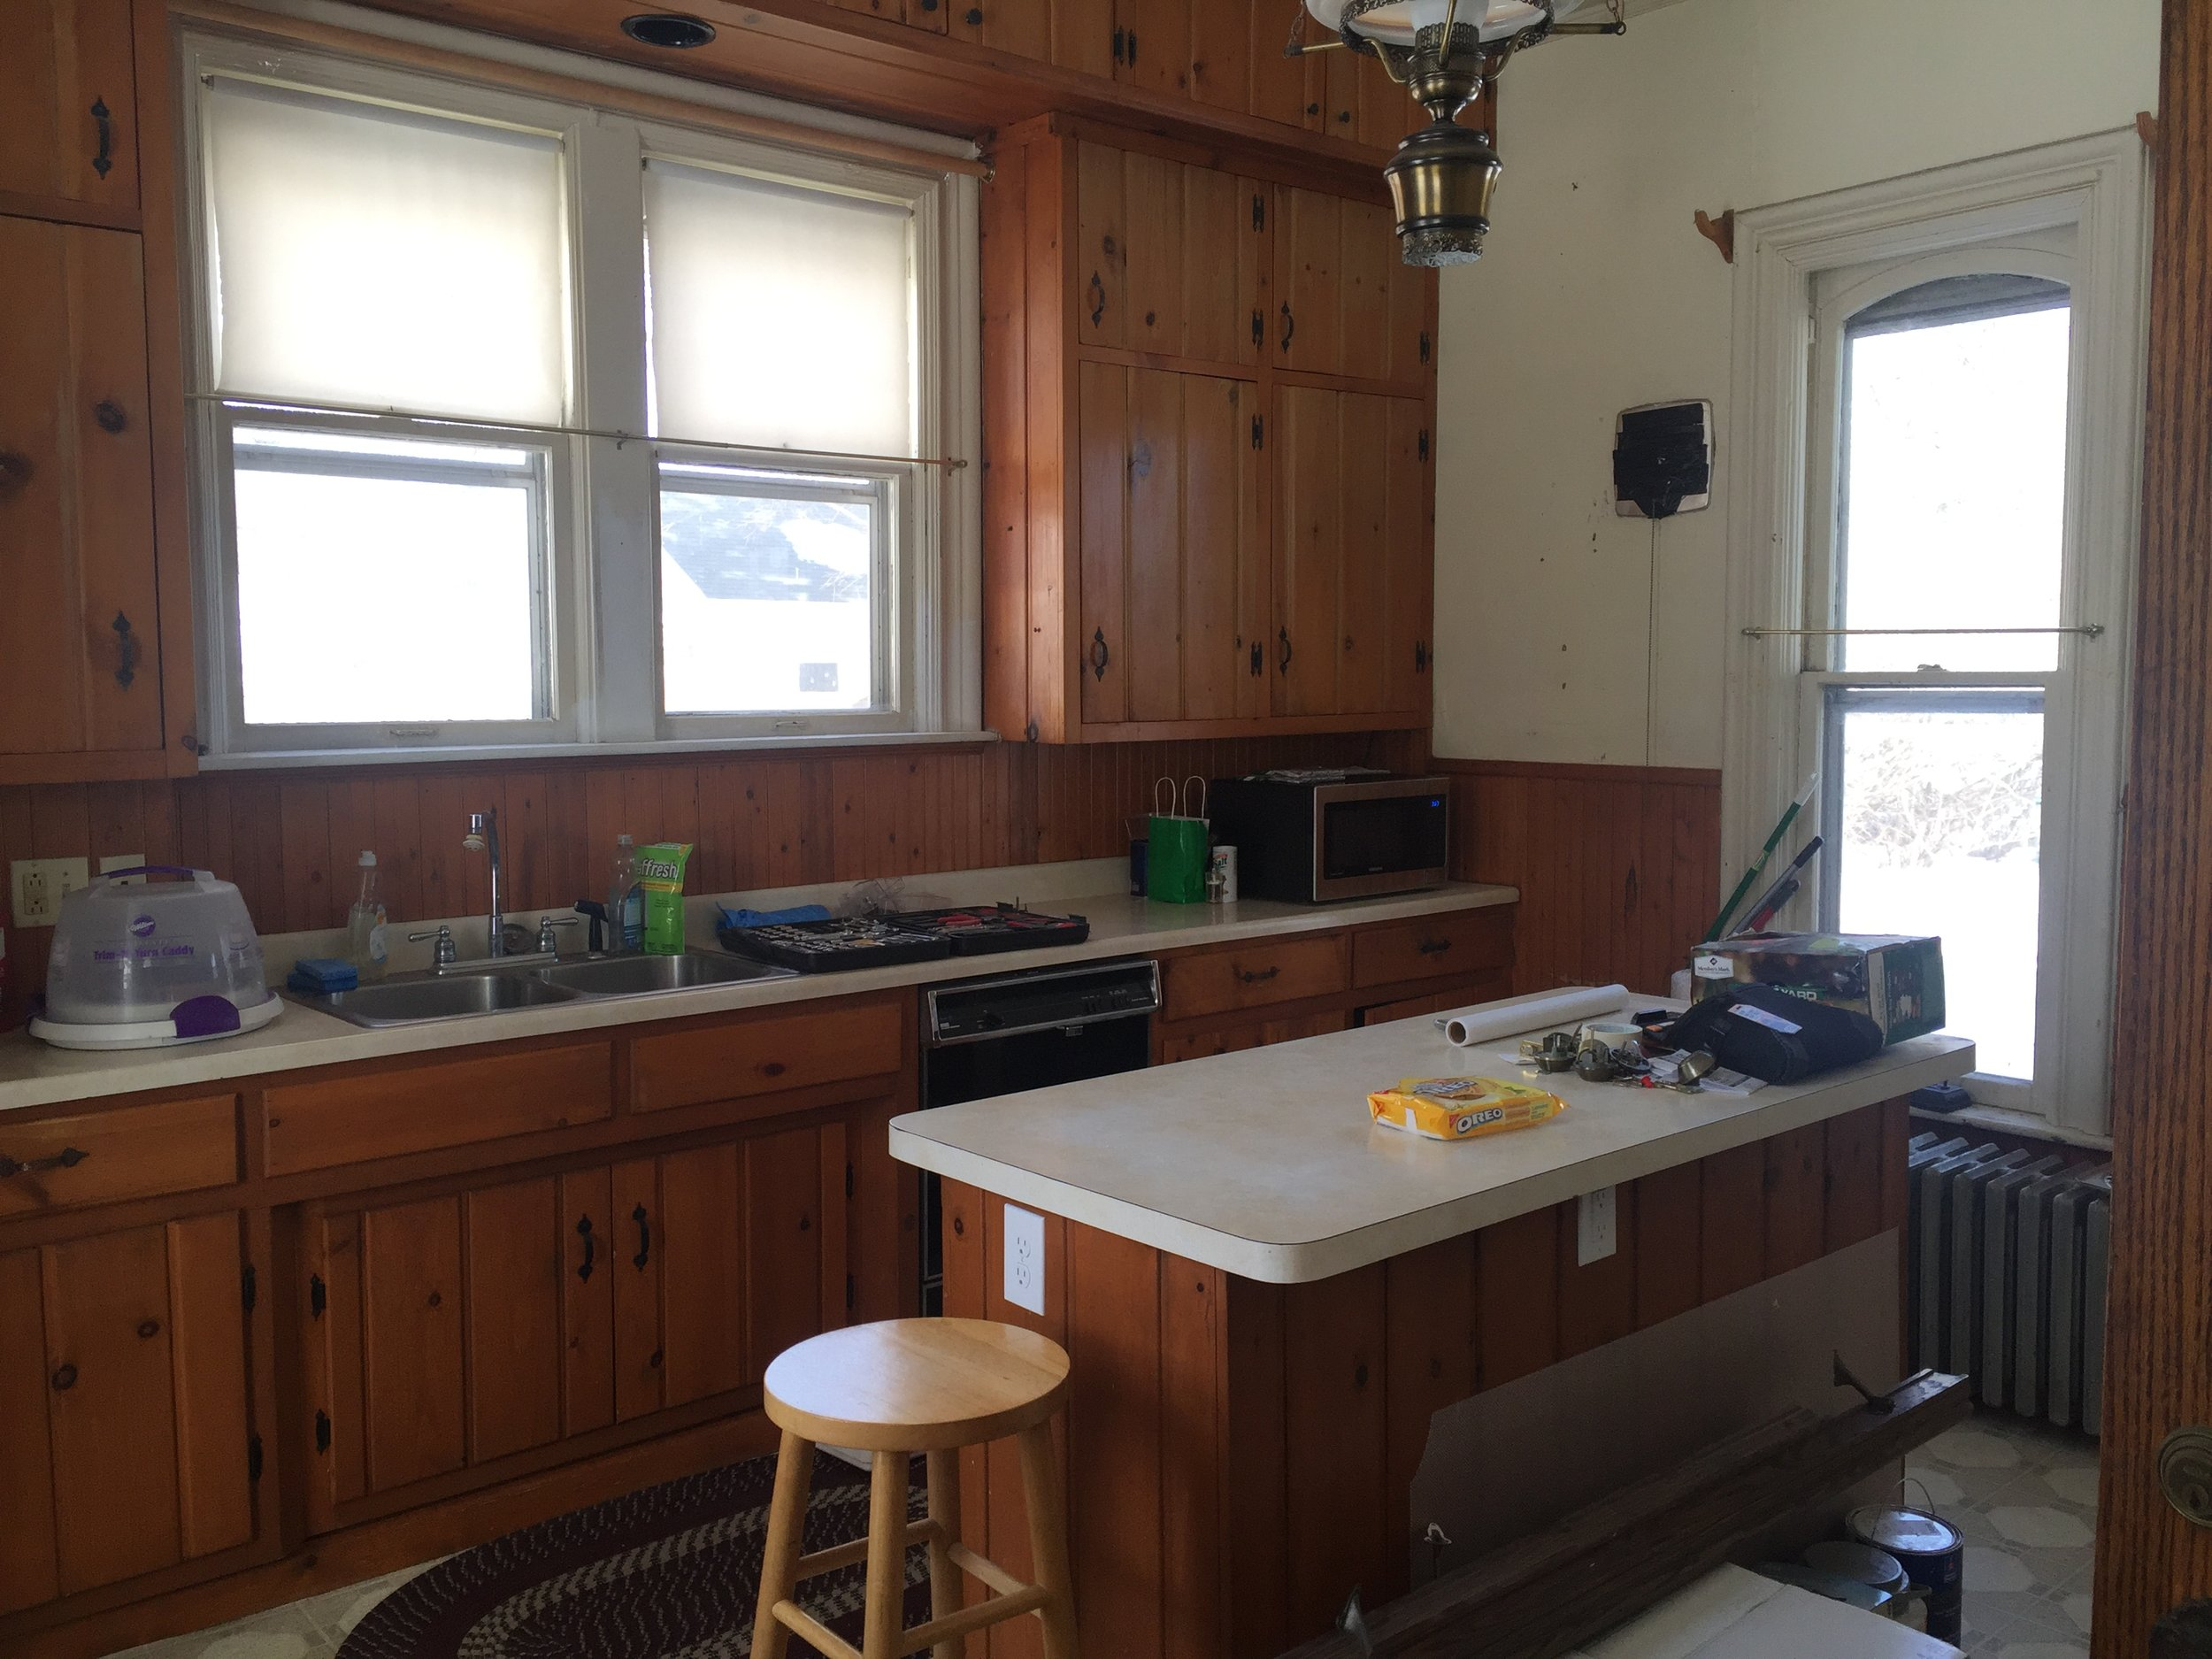 Prior to the remodel, the kitchen design didn't speak to its historic setting.